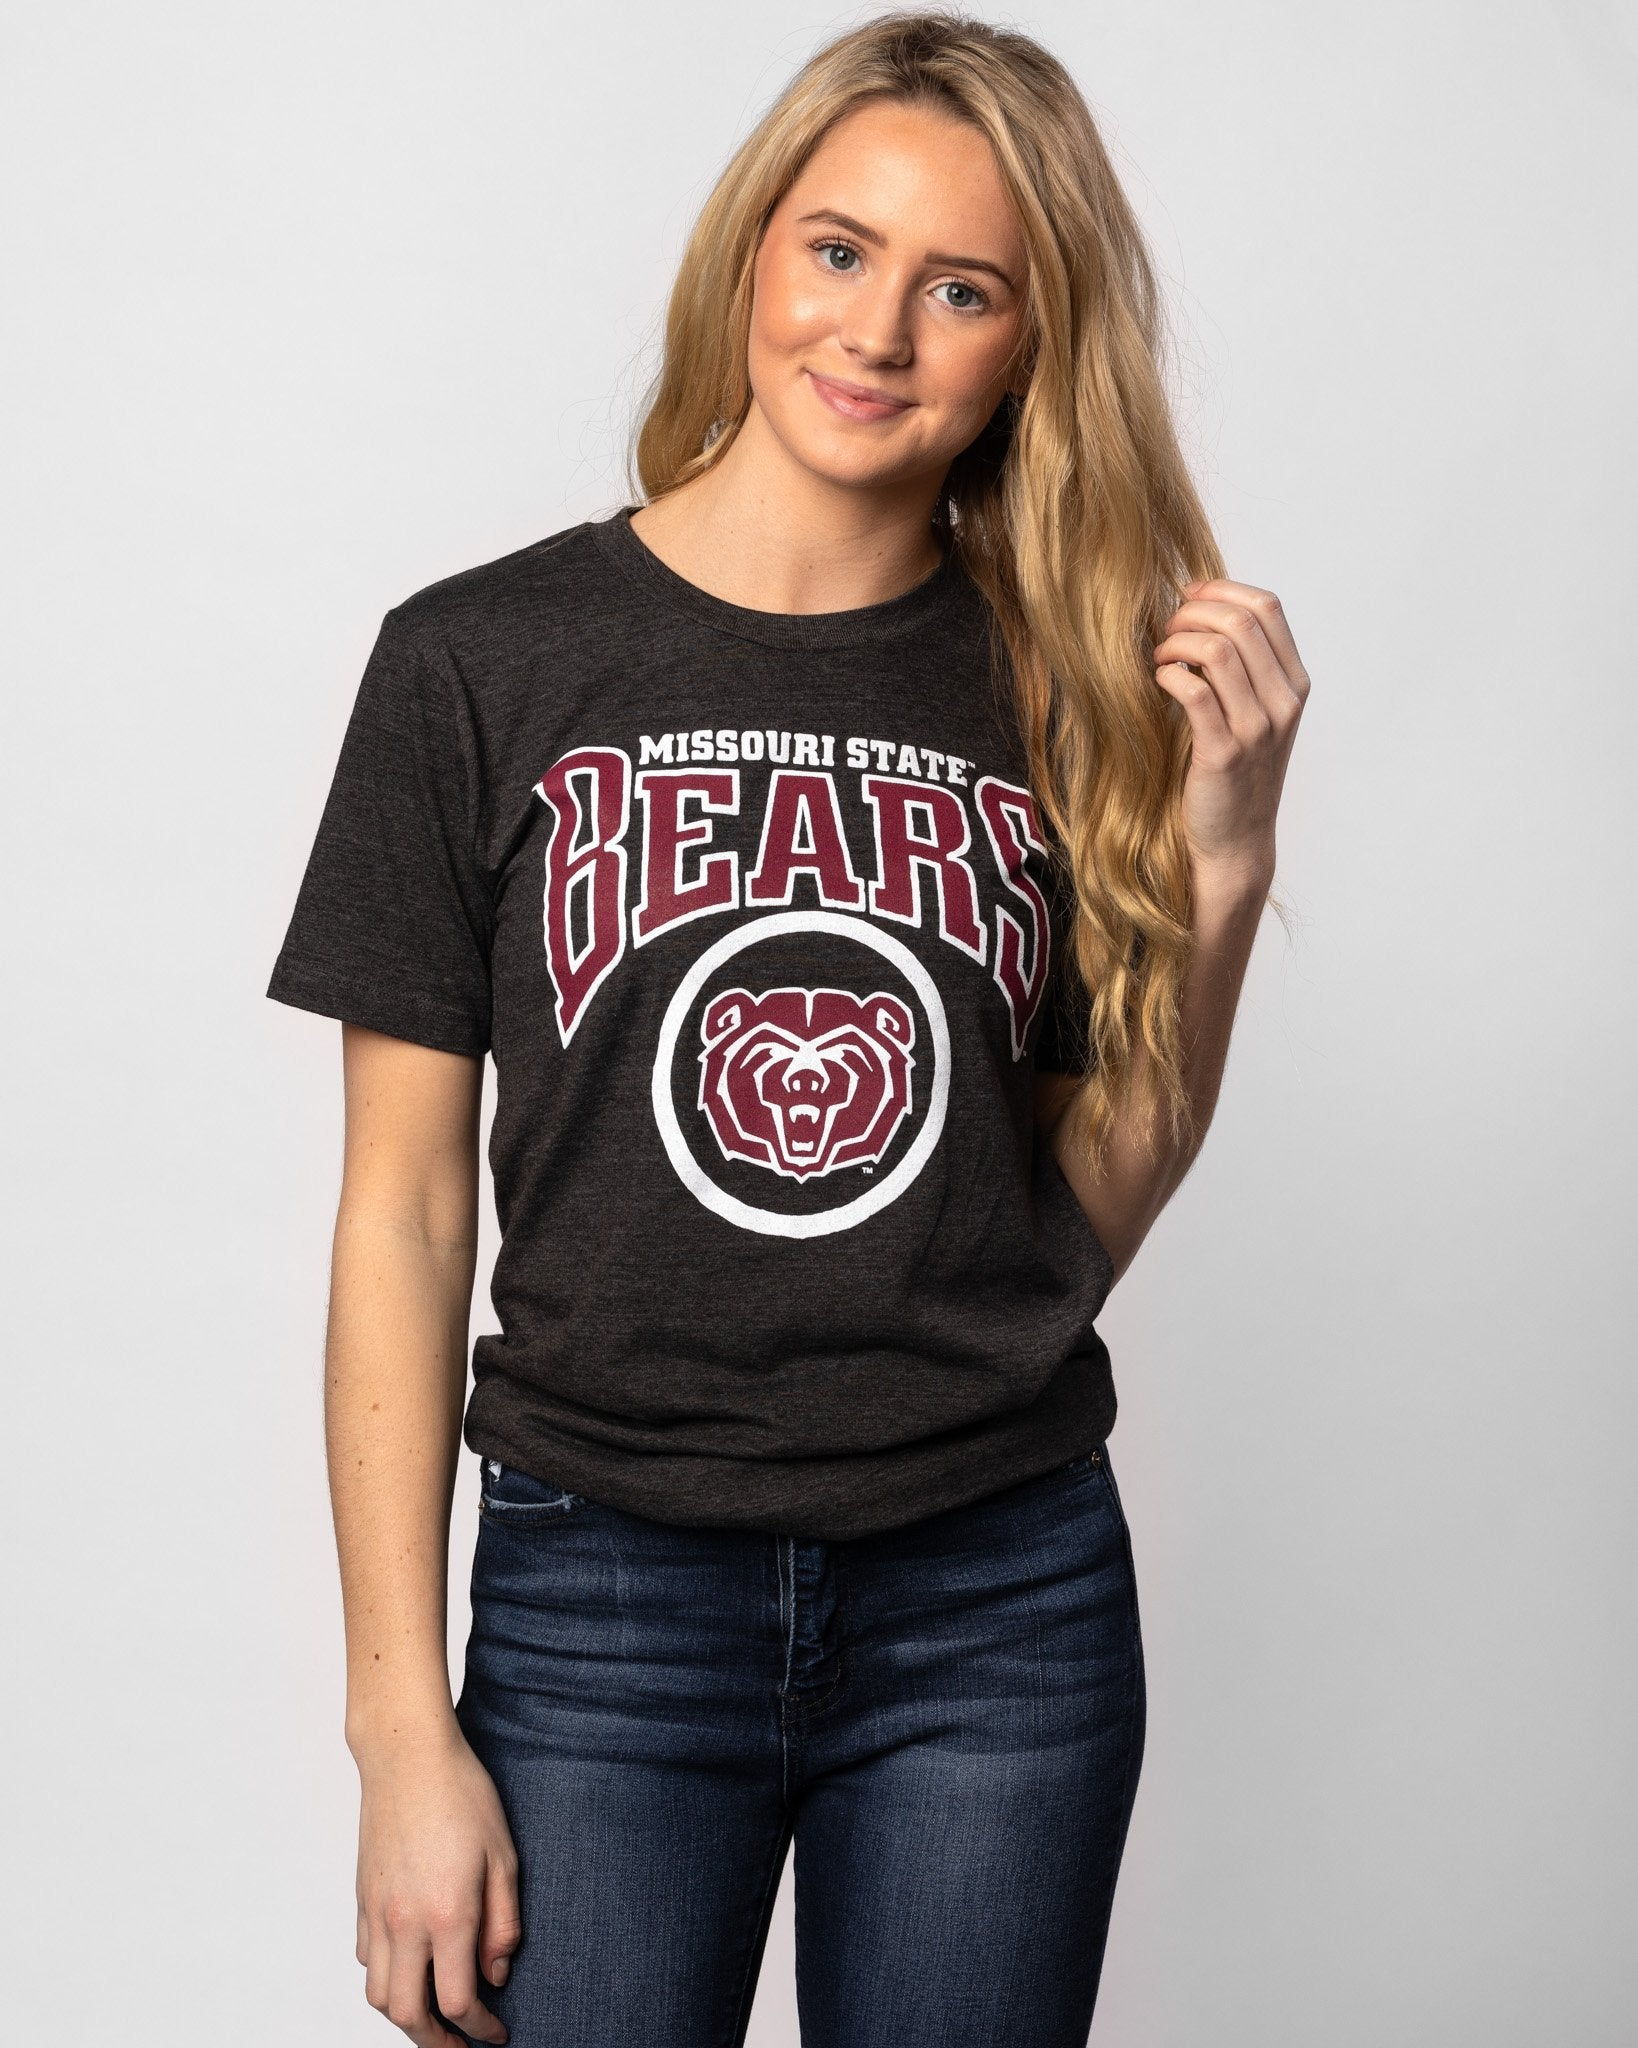 Black Missouri State Bears Vintage T-Shirt Front